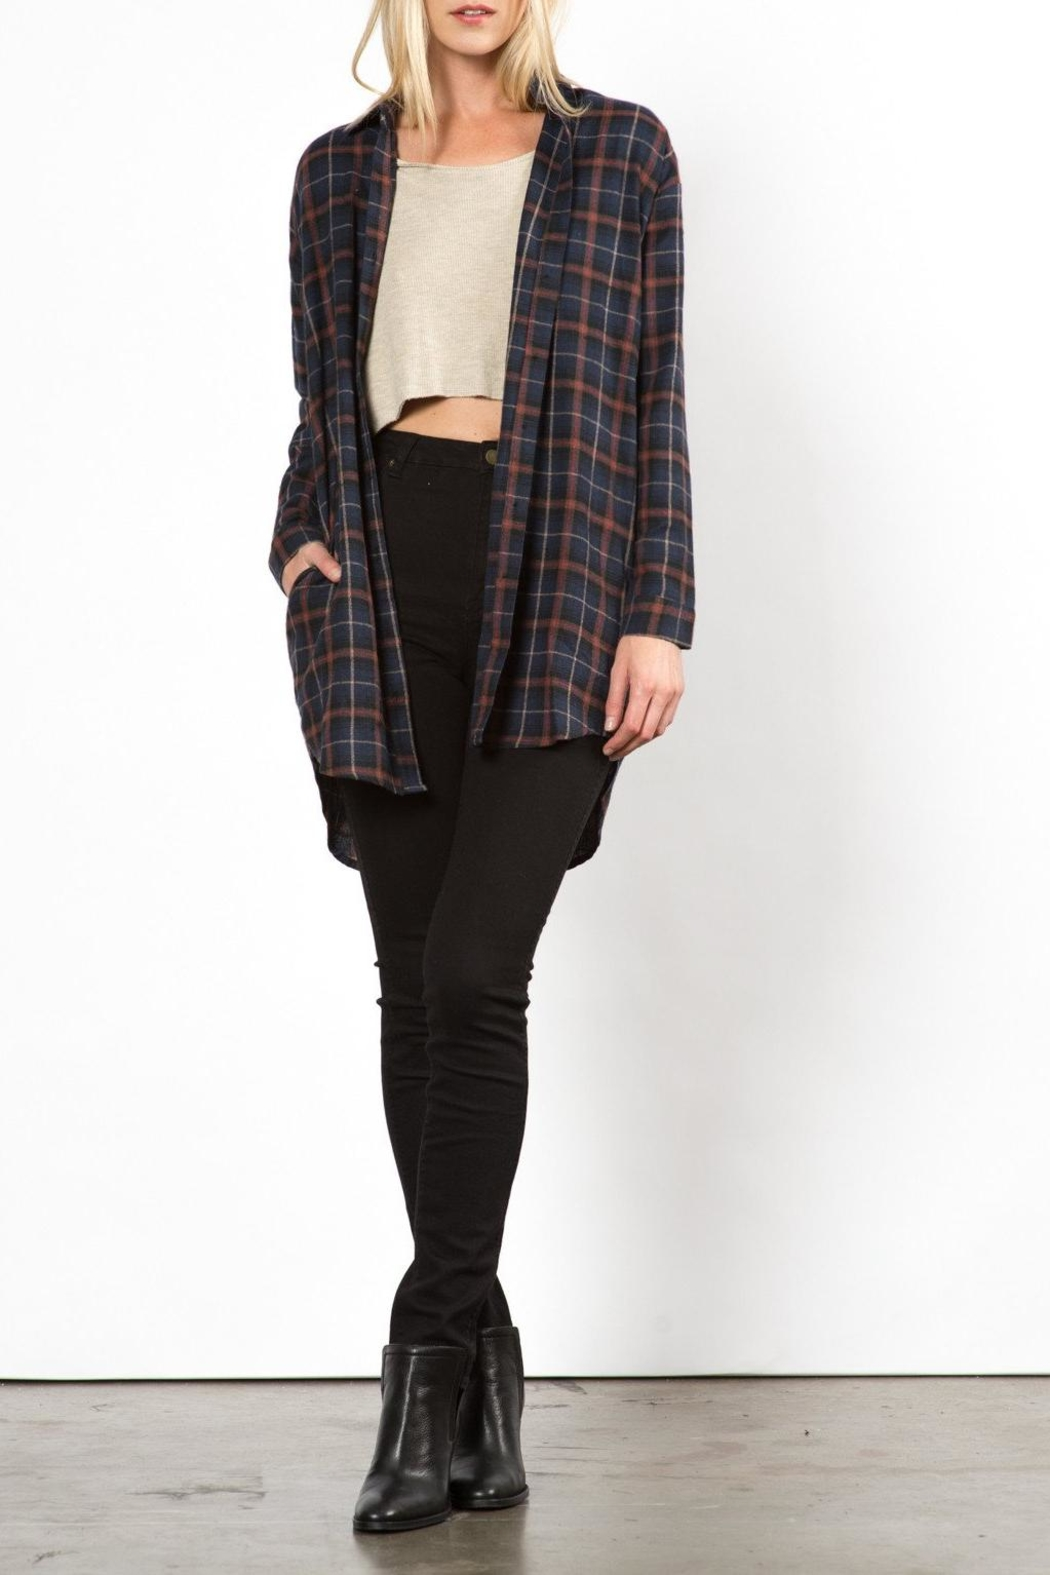 Very J Phoenix Plaid Top - Front Full Image